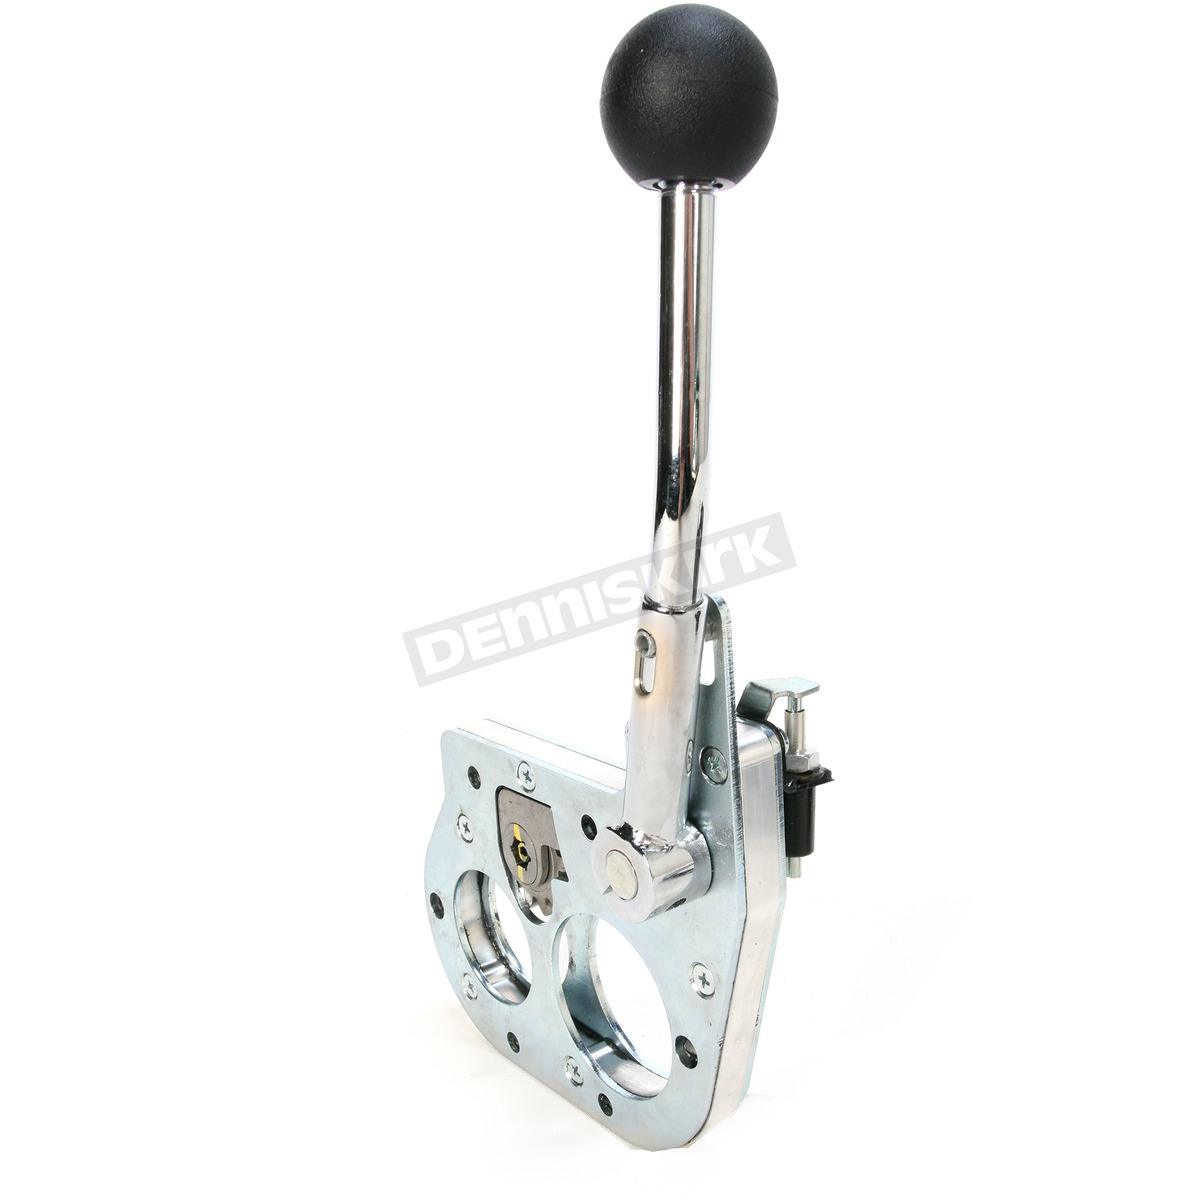 Mechanical Reverse with Electronic Cut-Off Switch - MTTR-0021